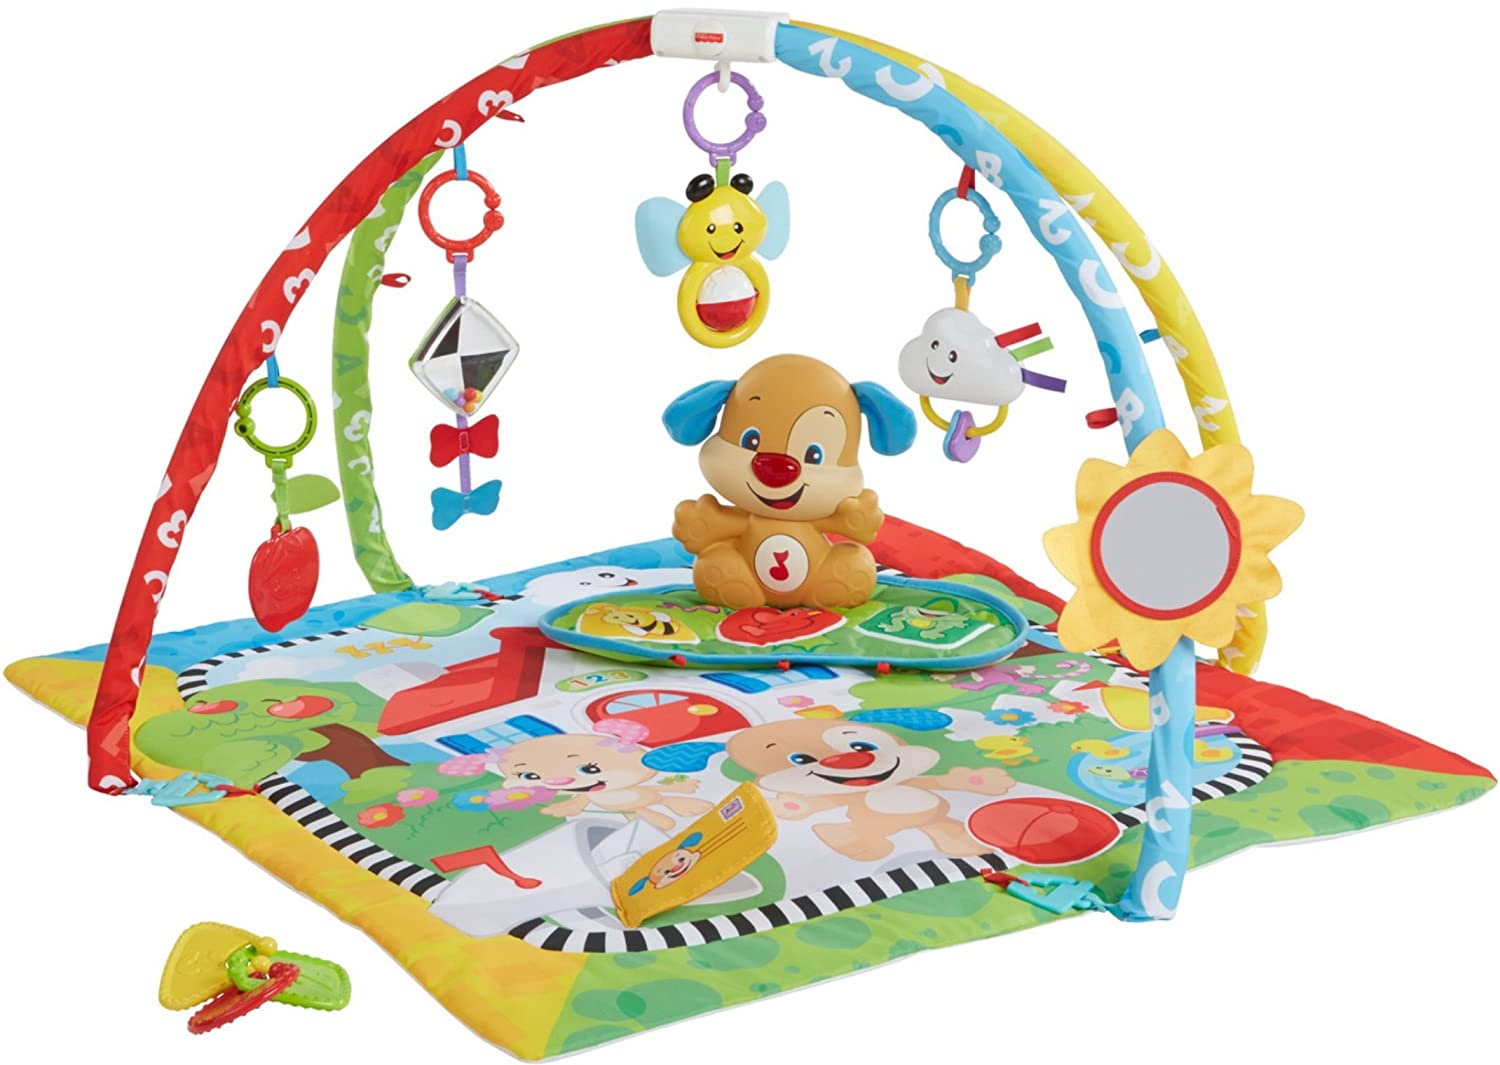 Fisher-Price Puppy 'n Pals Learning Gym   B06ZZNBQGD